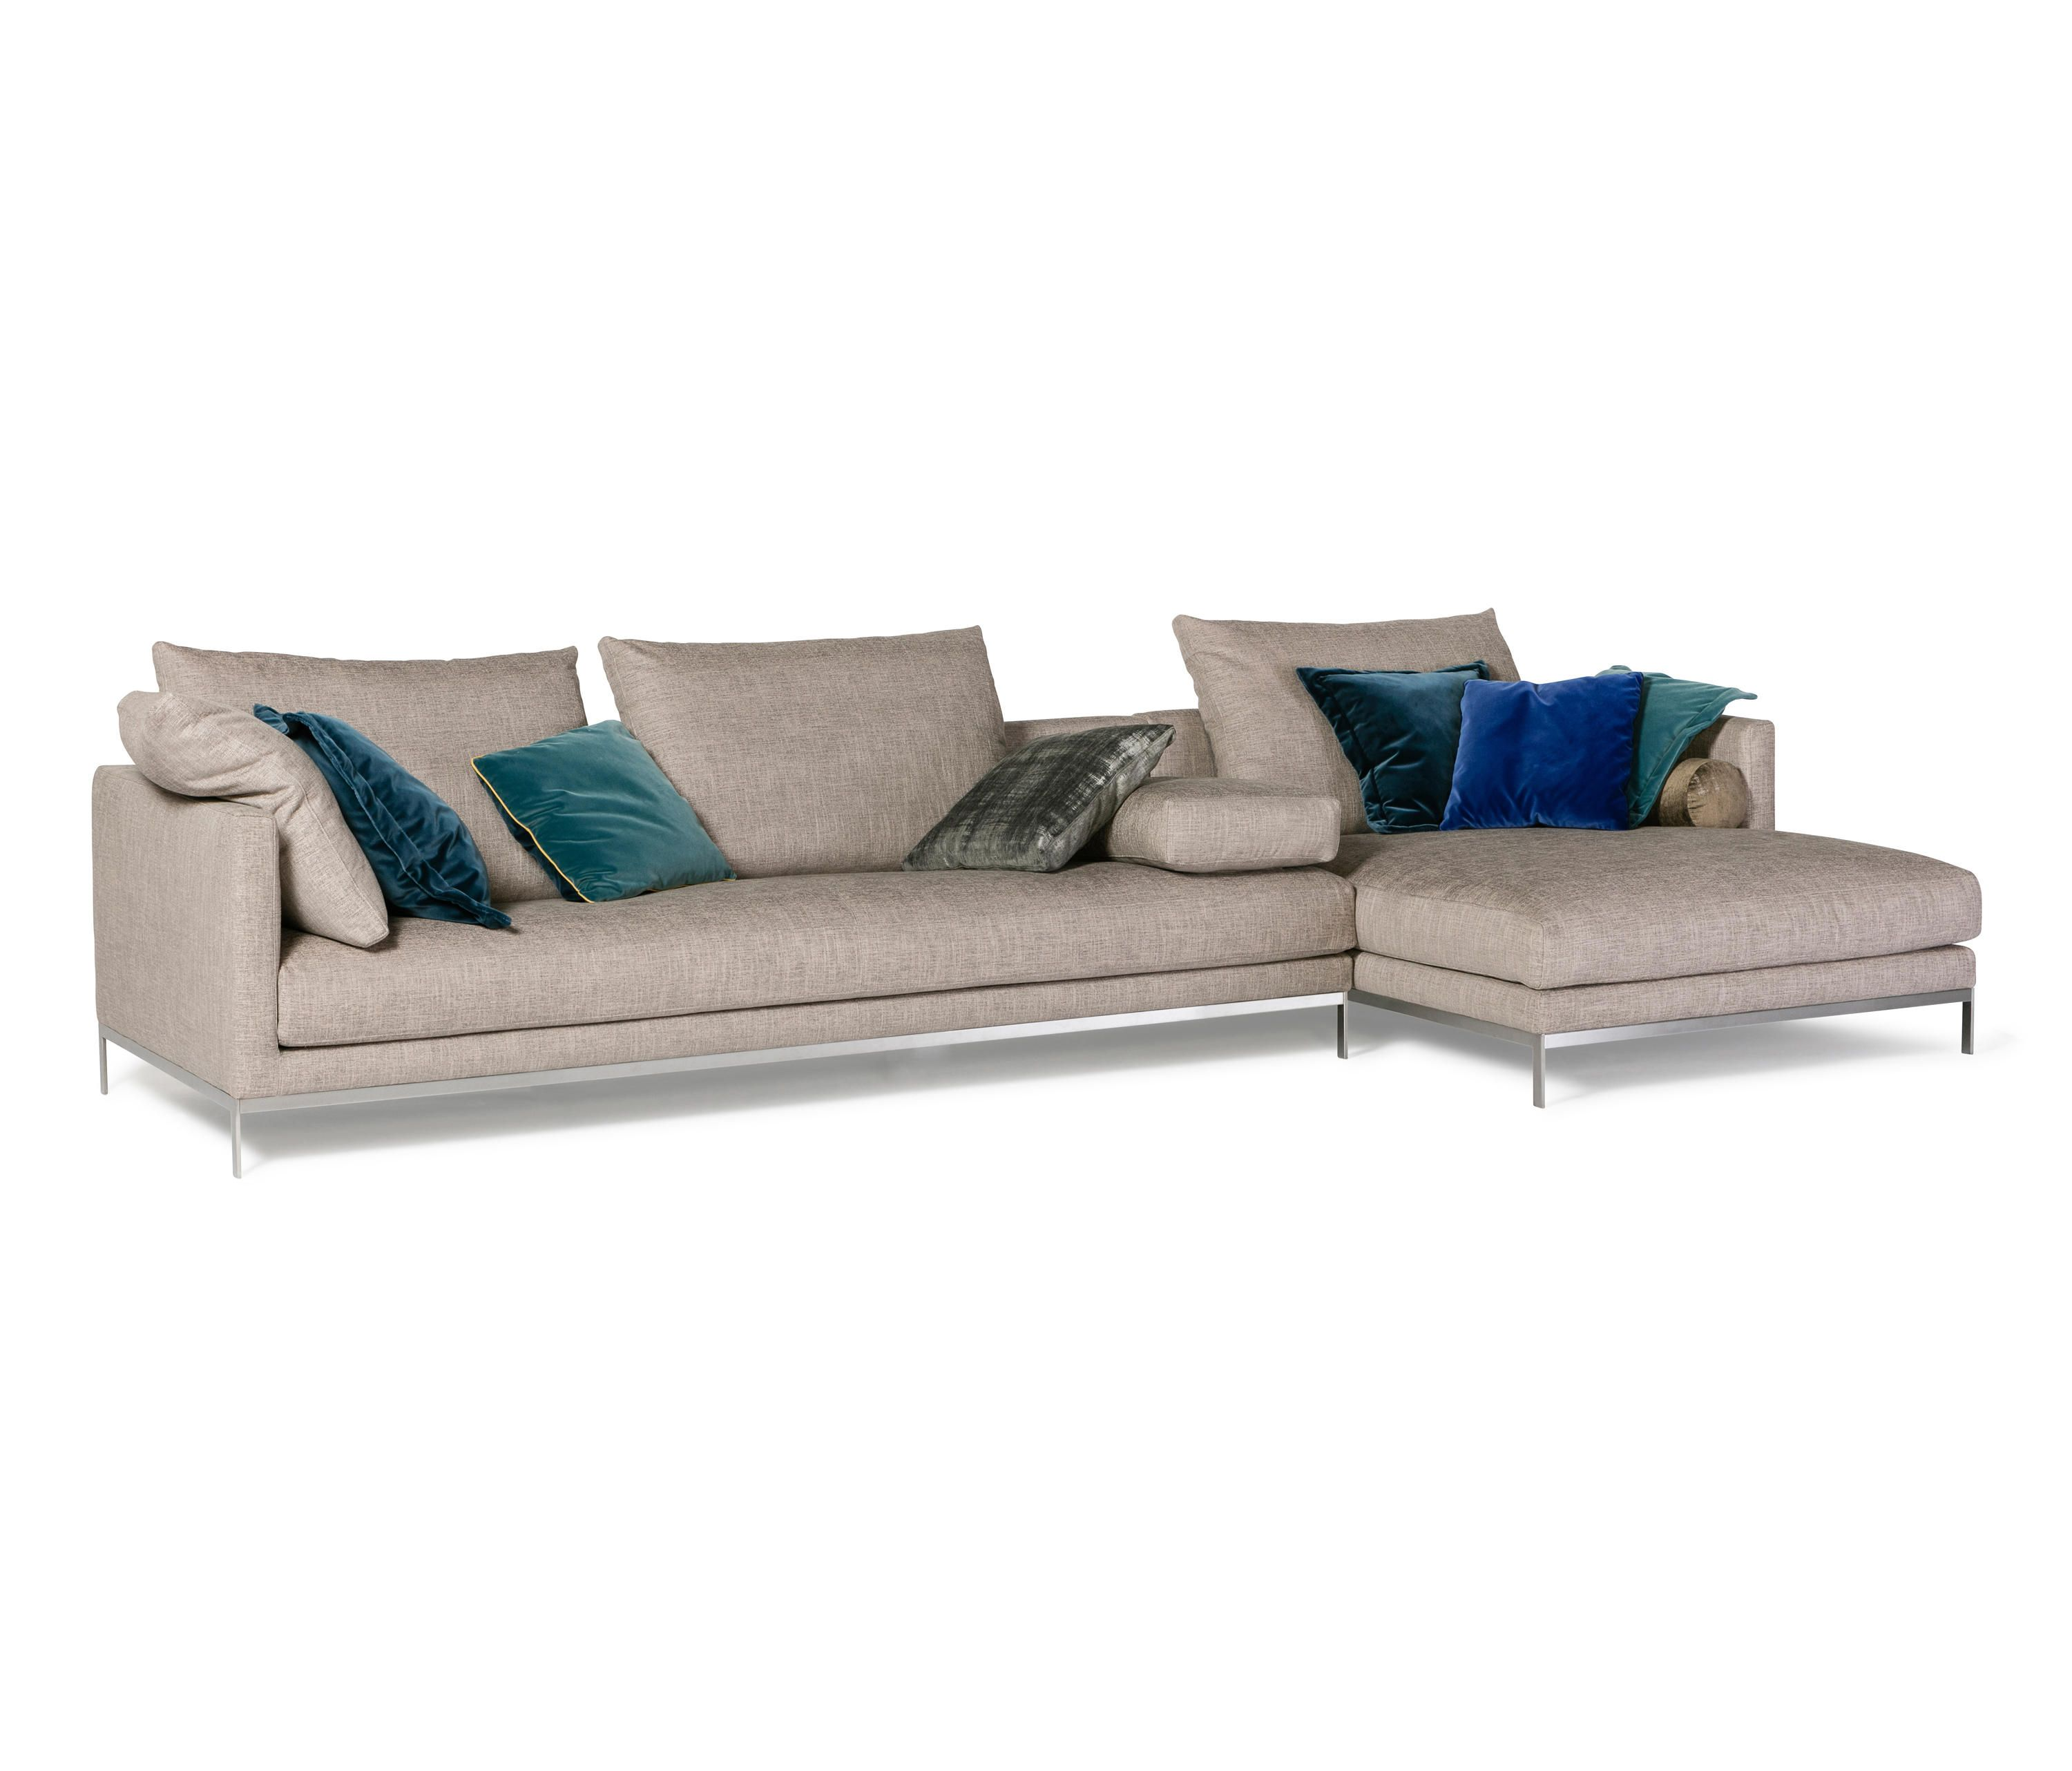 RELAX | SOFA - Designer Sofas from Linteloo ✓ all information ...